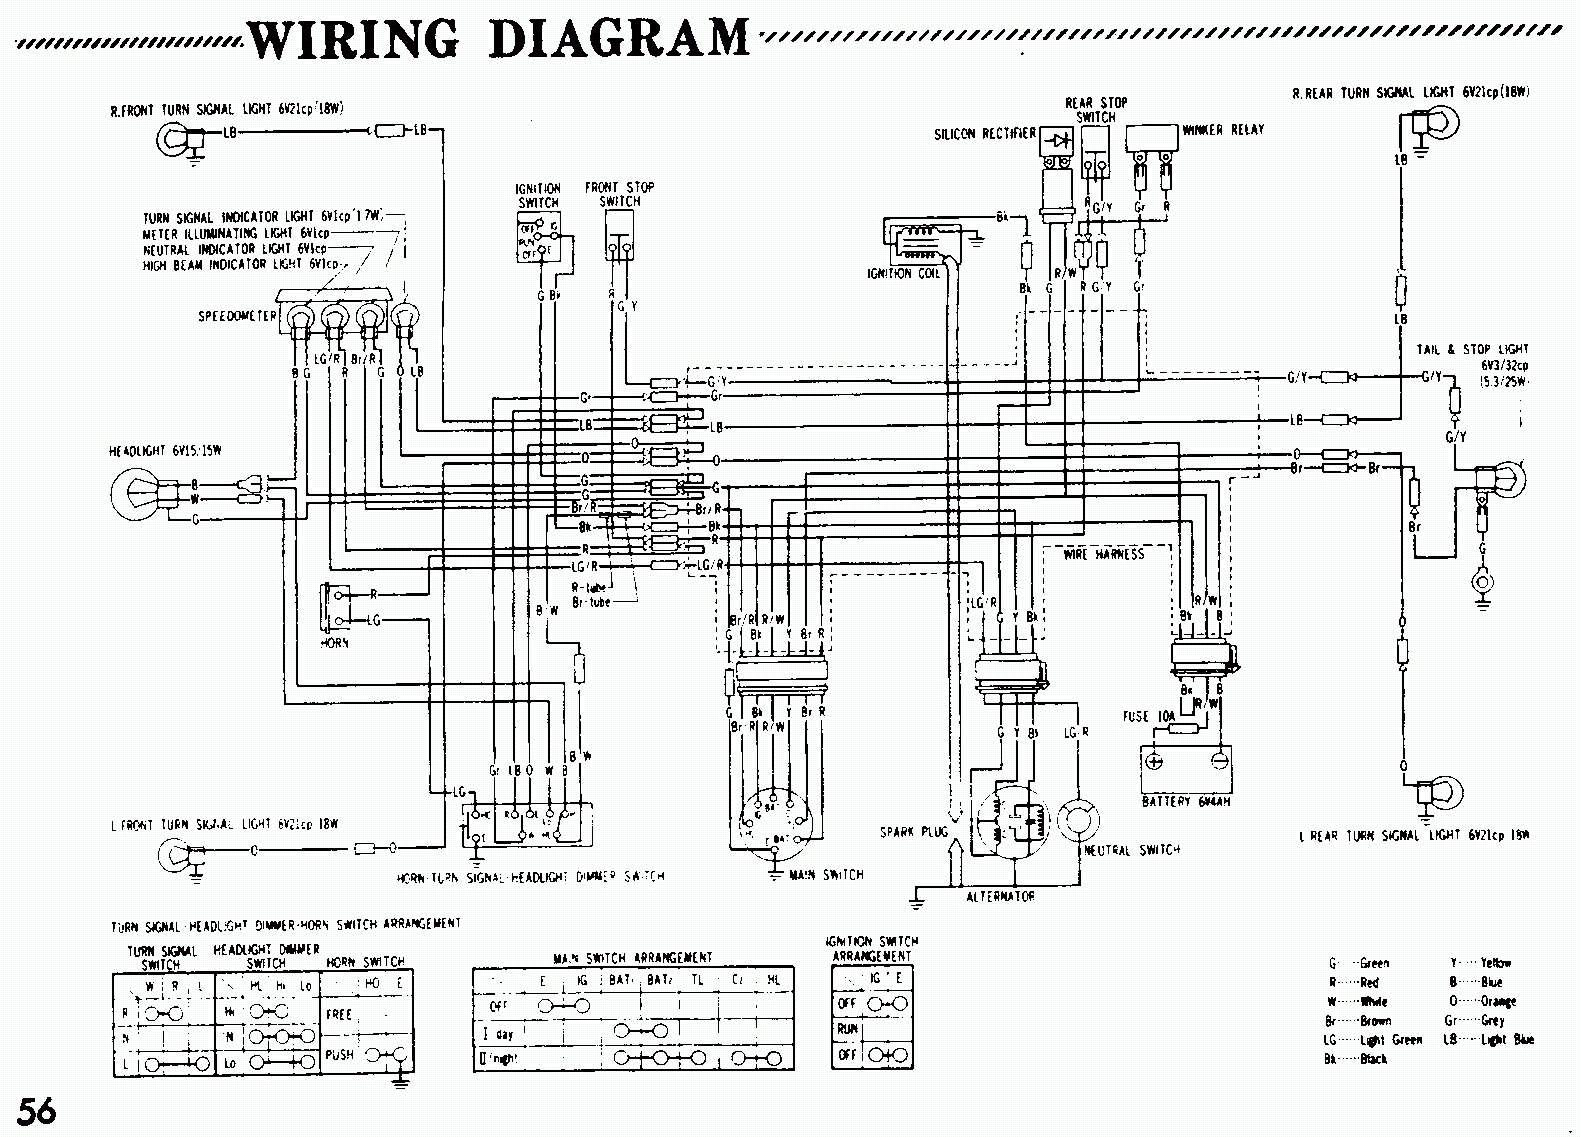 honda ct70 1976 wiring diagram honda xl70 wiring diagram honda cb750 wiring diagram \u2022 free wiring honda xl80s wiring diagram at readyjetset.co